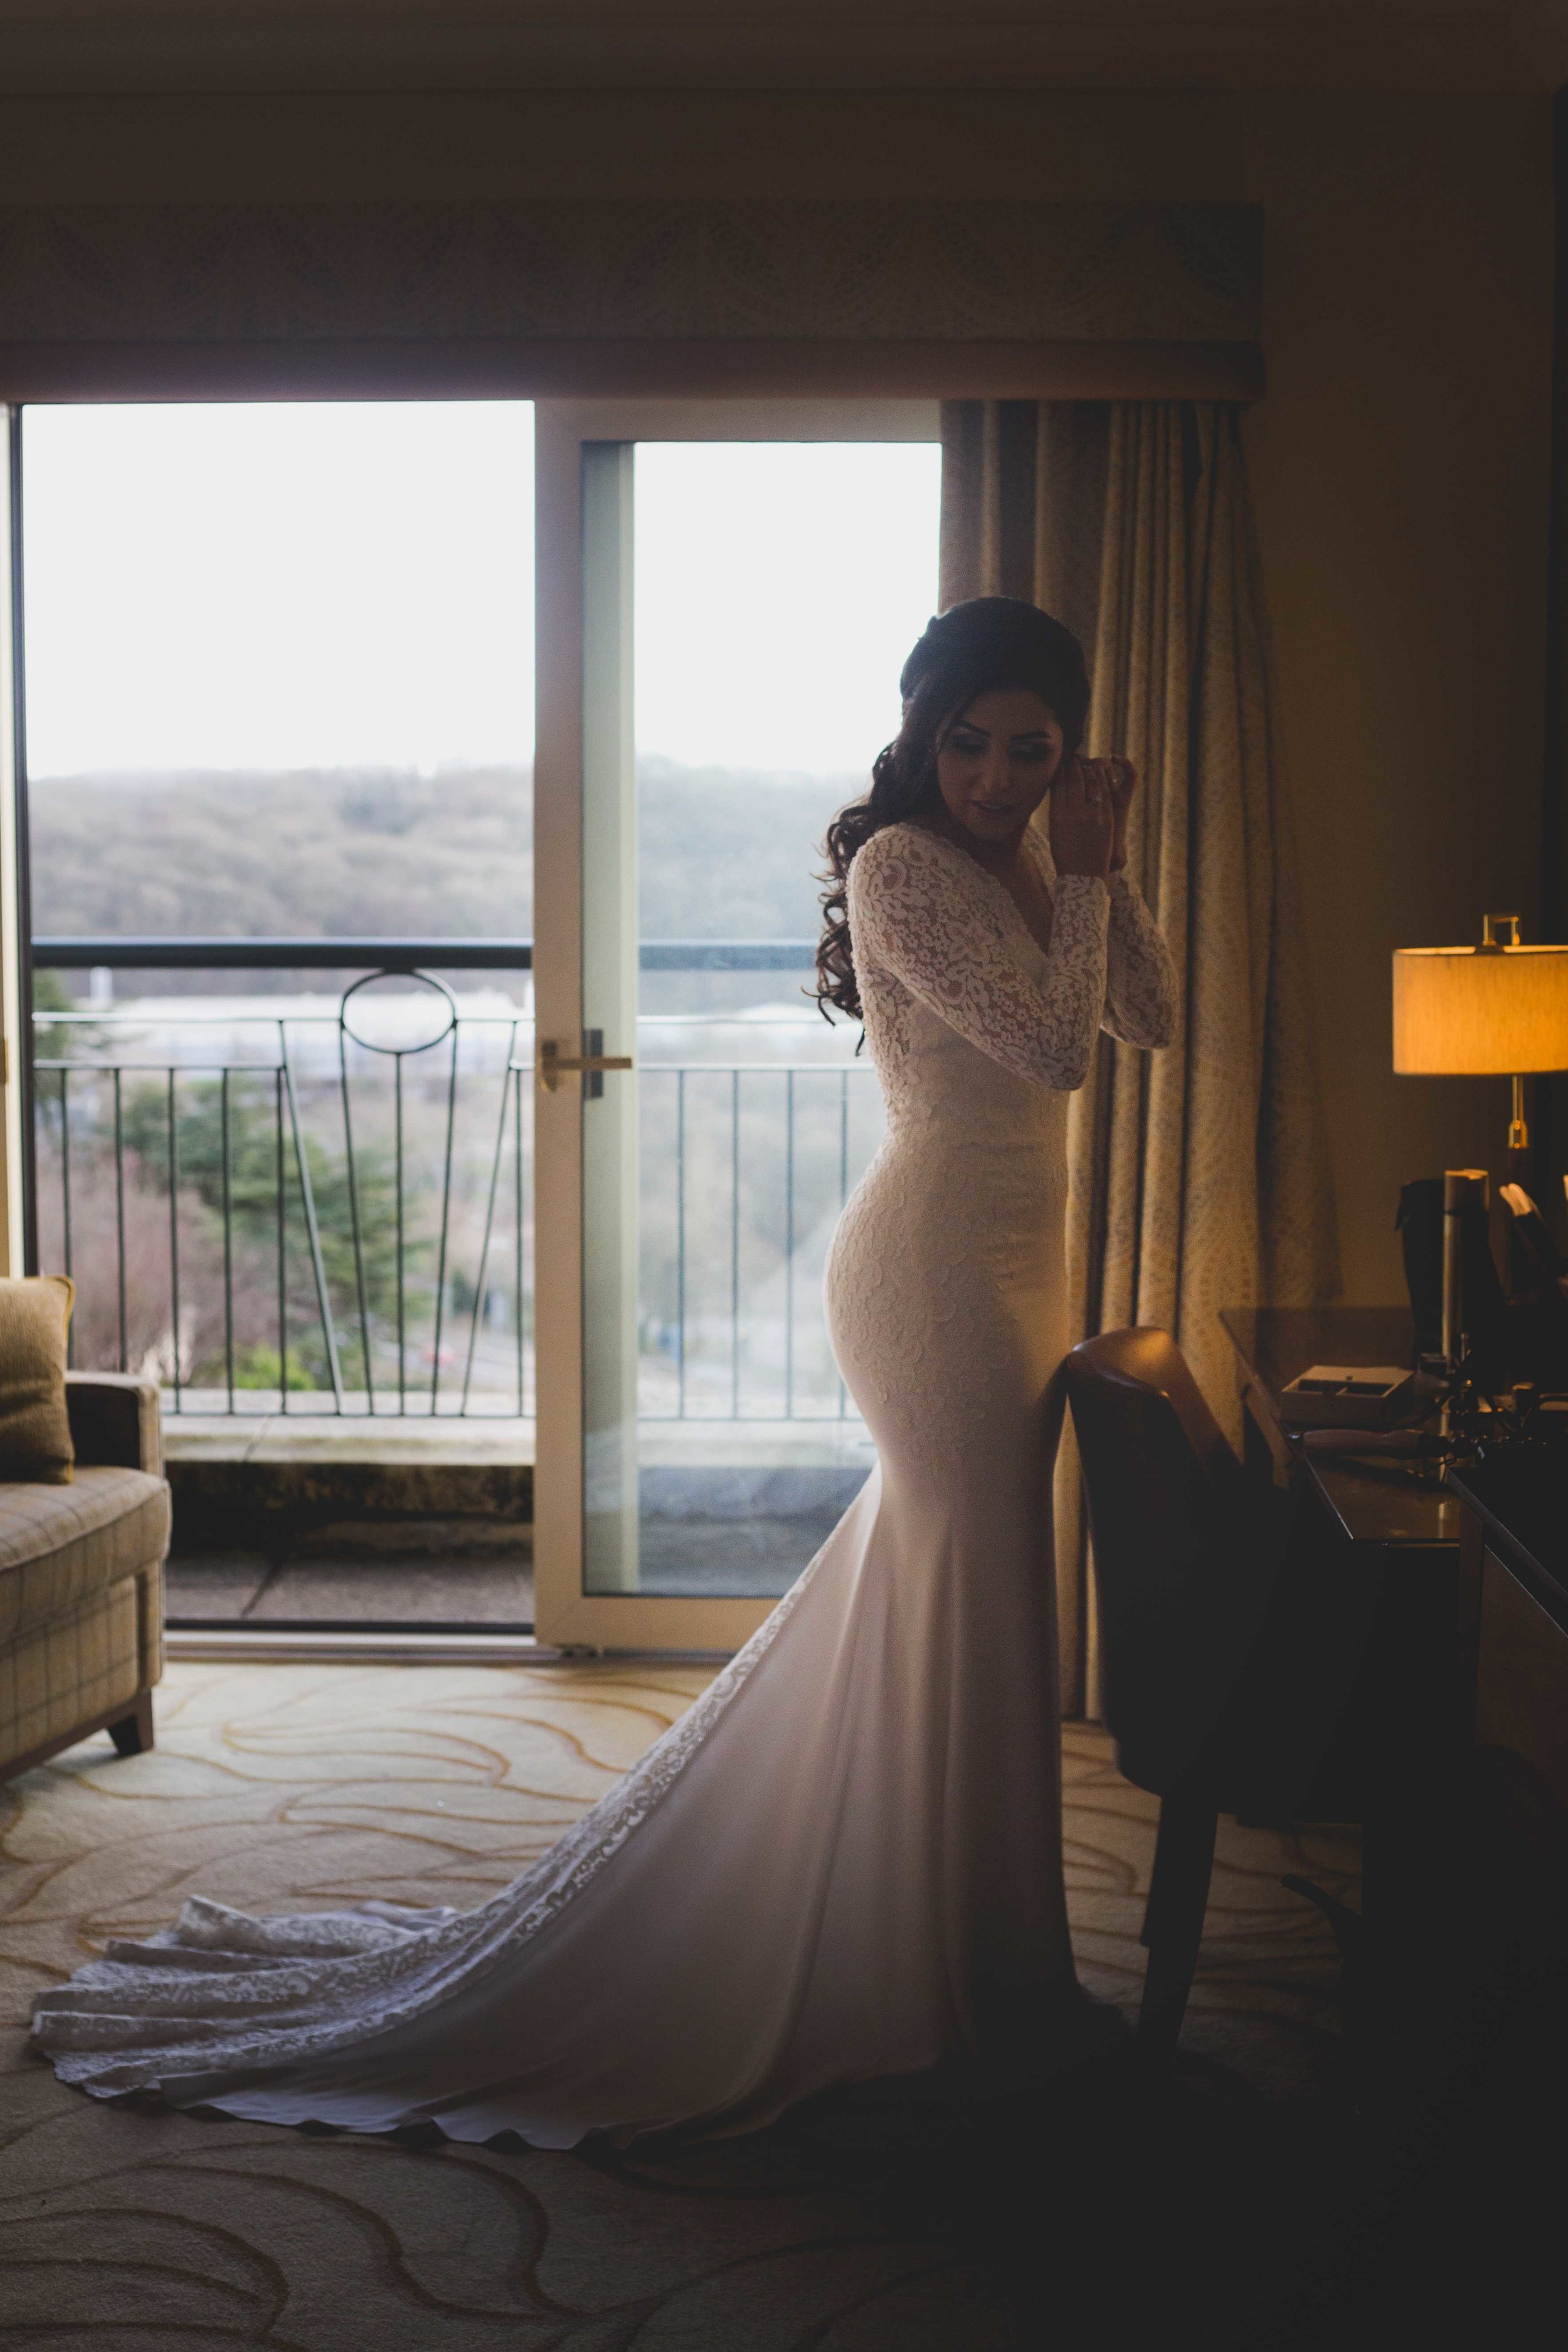 Portrait image of bride getting ready and putting on earrings